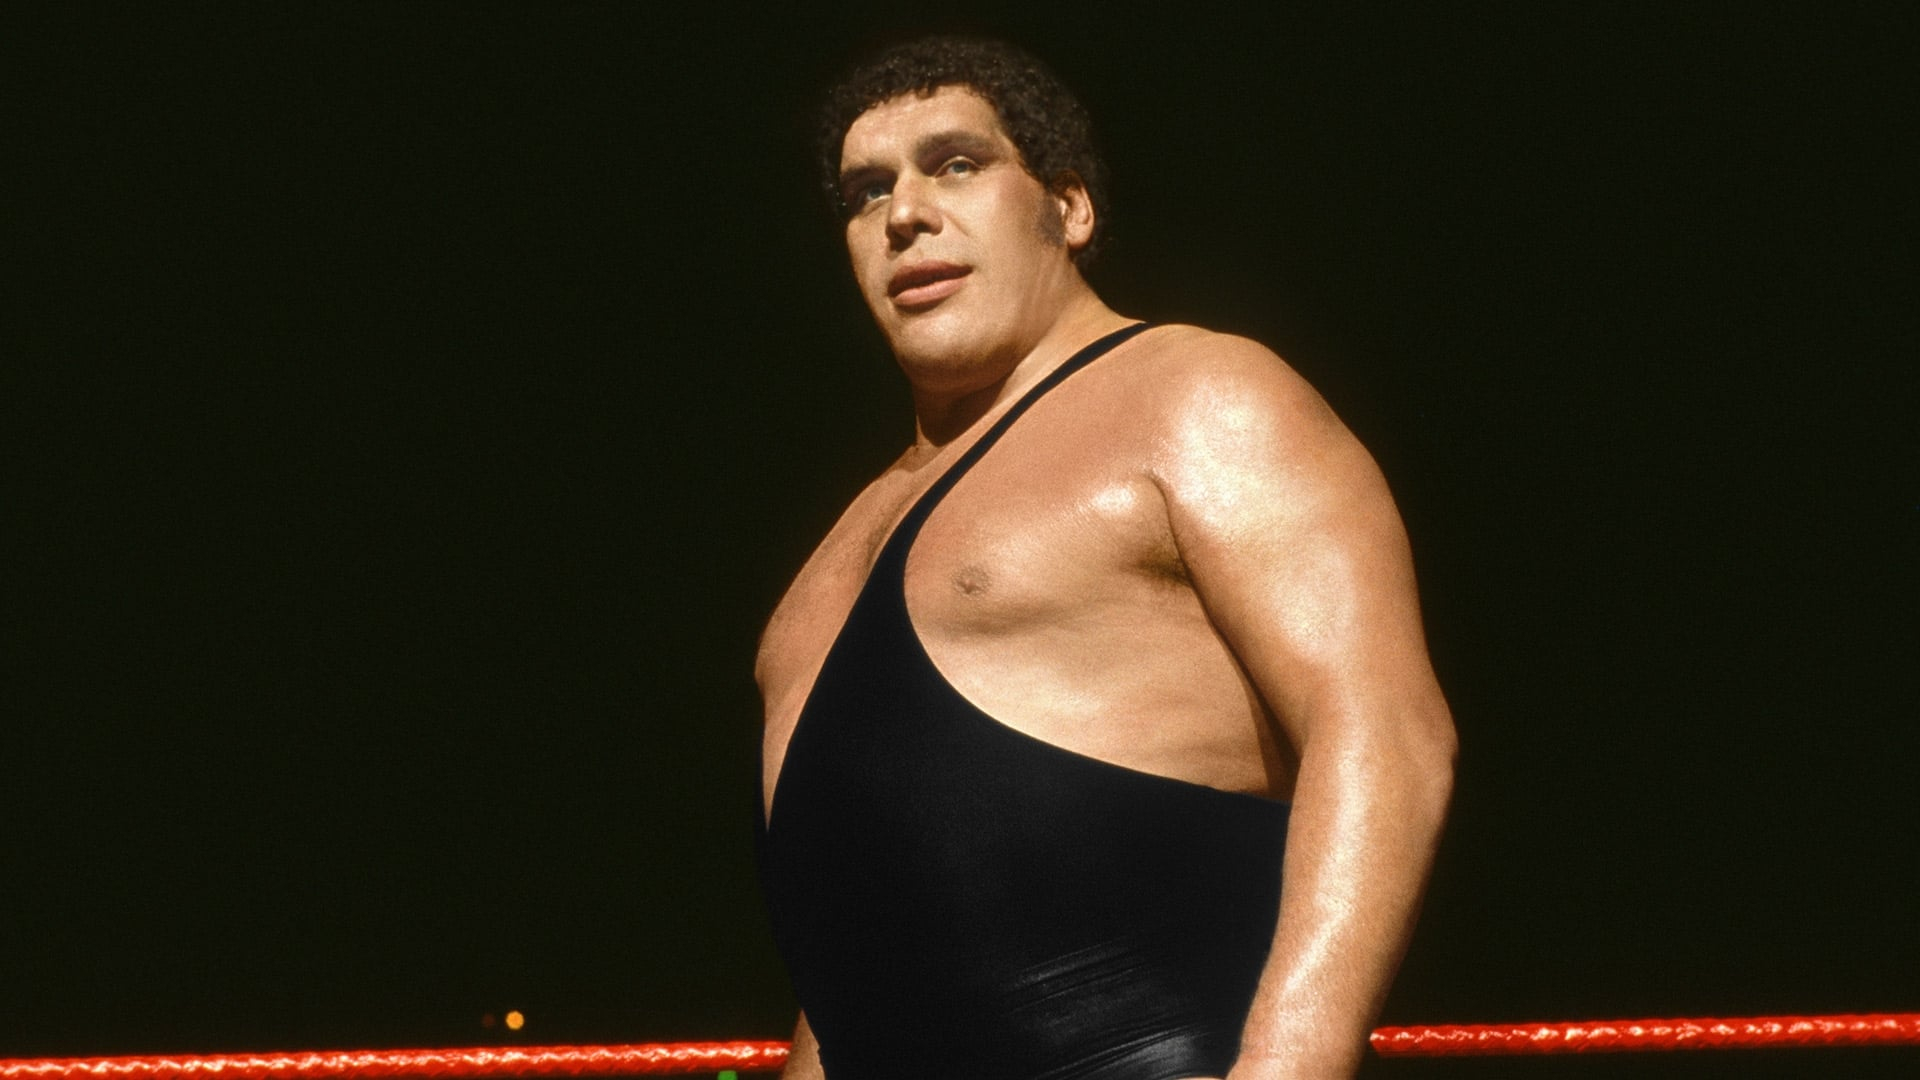 Image Result For Andre The Giant